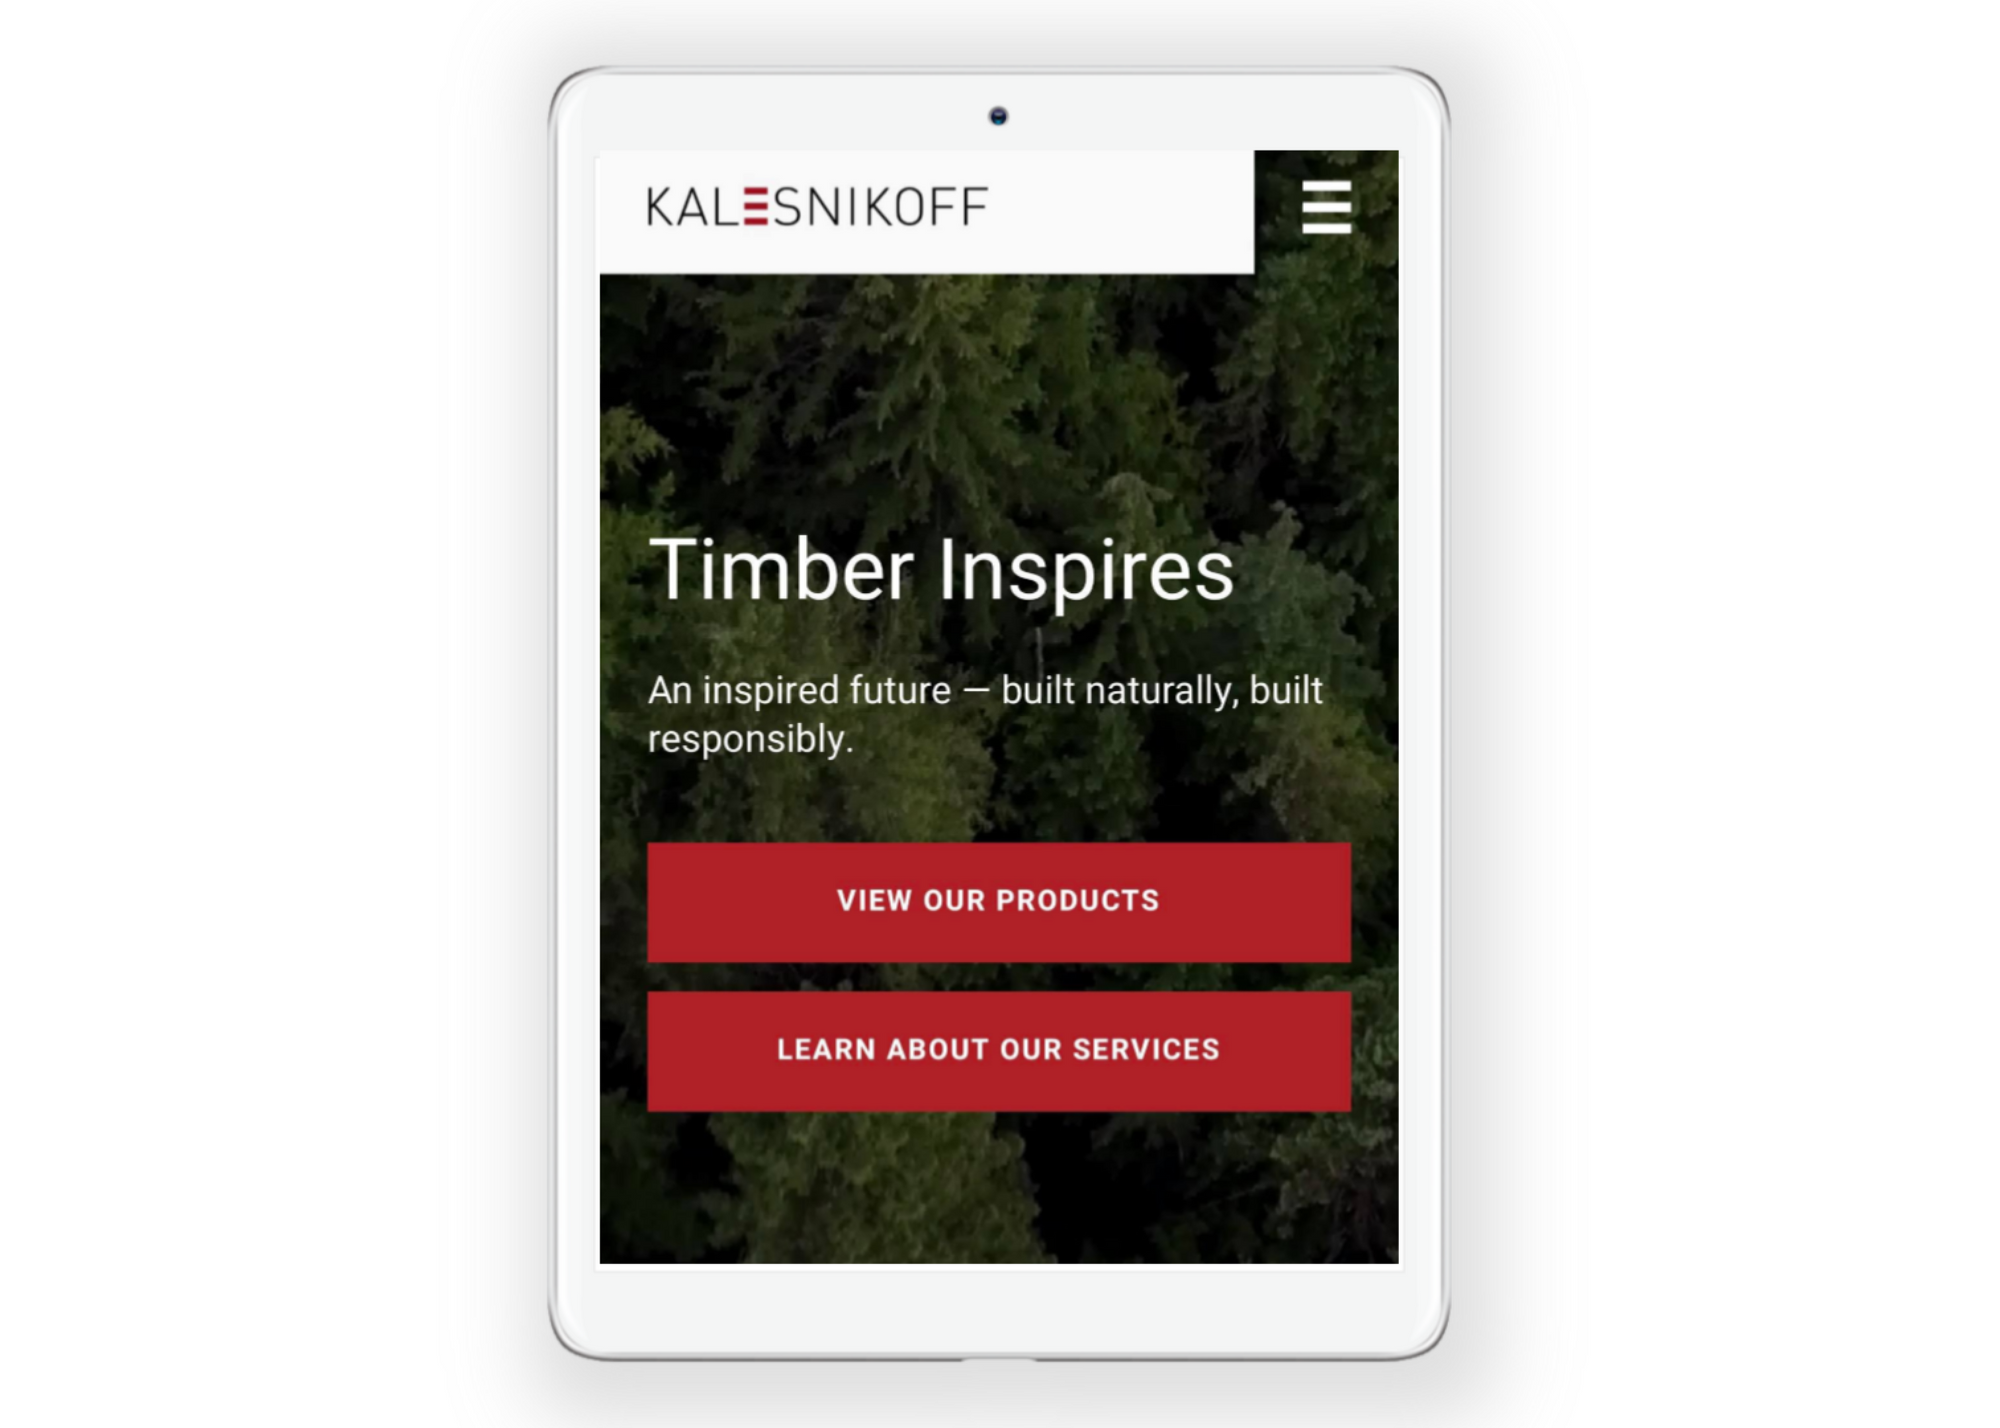 Kalesnikoff new mass timber website in mobile form